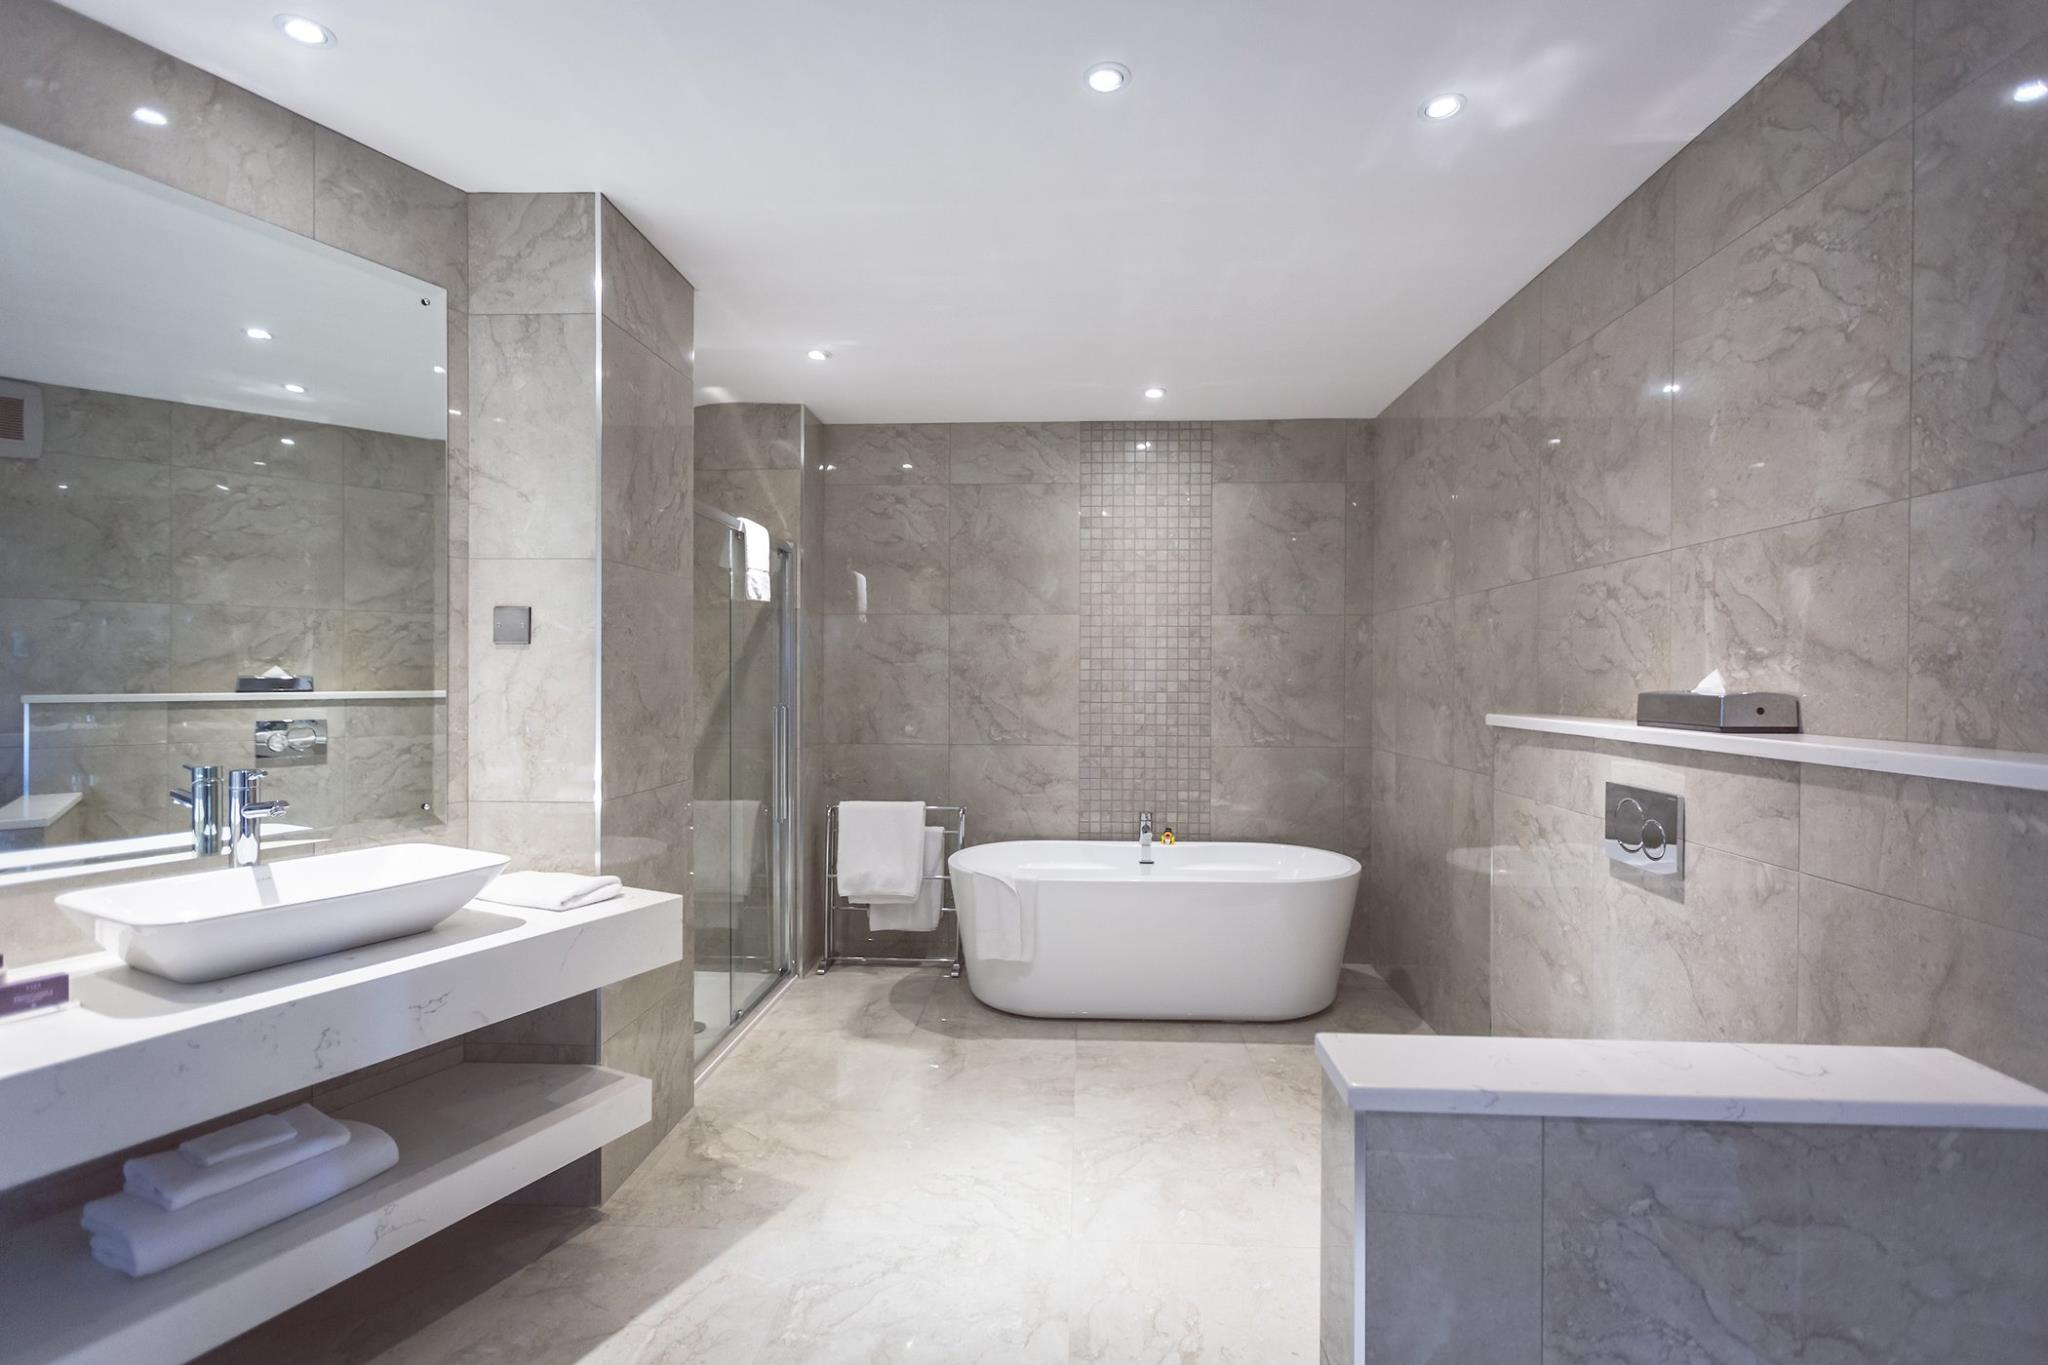 commercial bathroom design installation and renovation - Commercial Bathroom